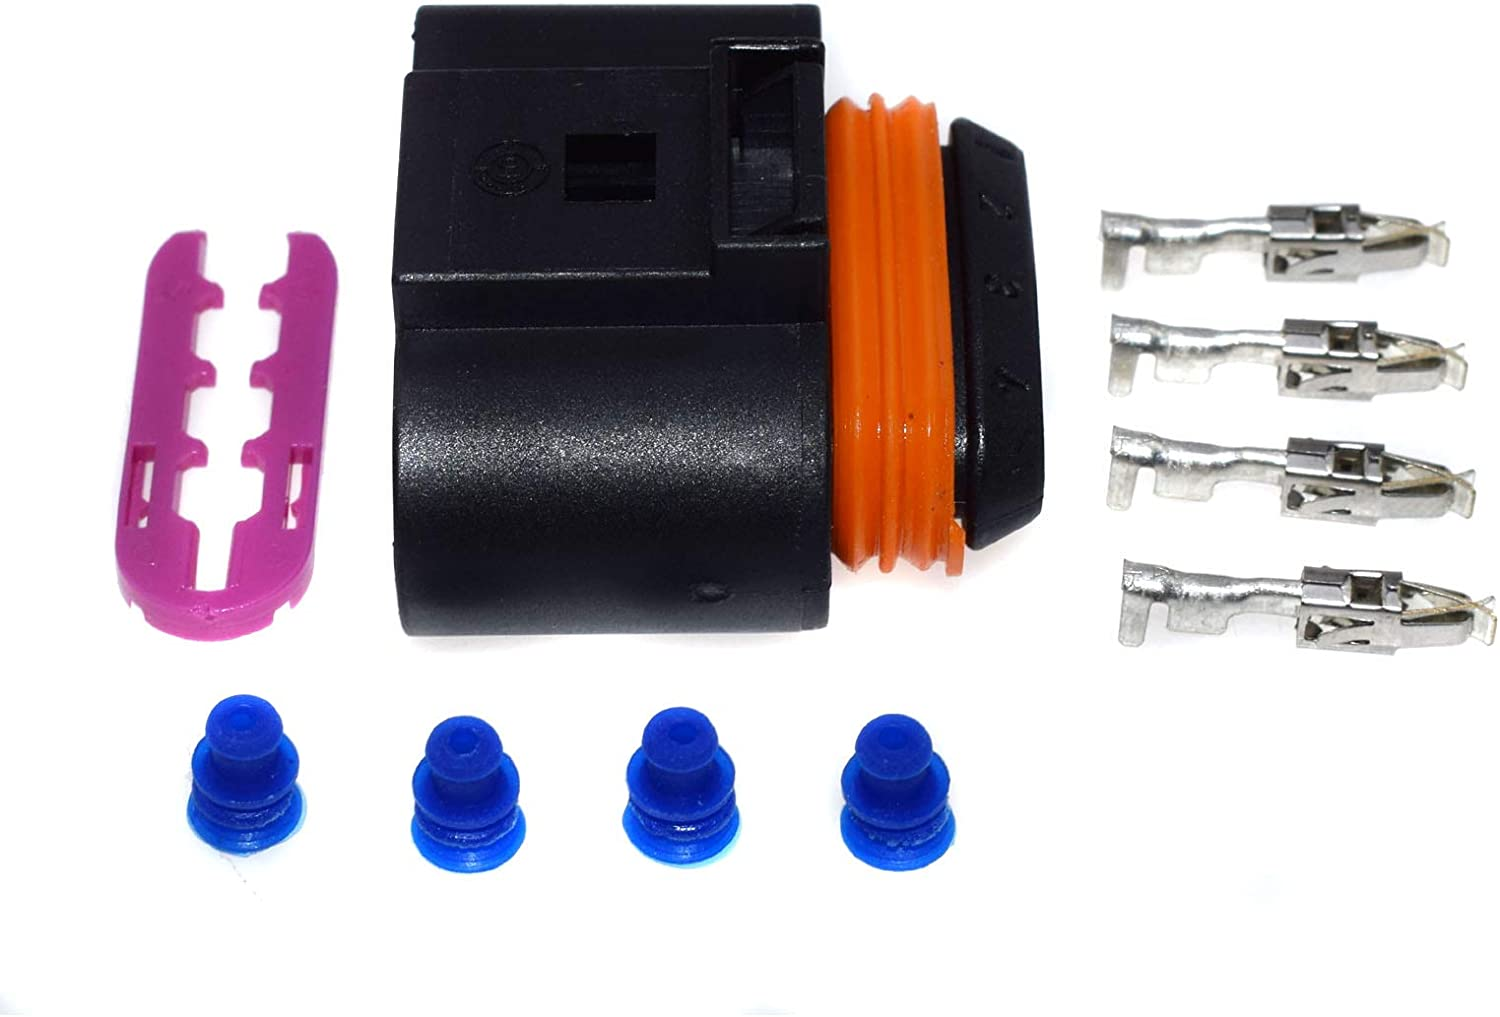 1J0973724 KUNFINE 4PCS//Lot Ignition Coil Connector Plug Repair Kit ForAudi A4 A6 rs4 rs6 a8 Cable Adapter 1J0 973 724